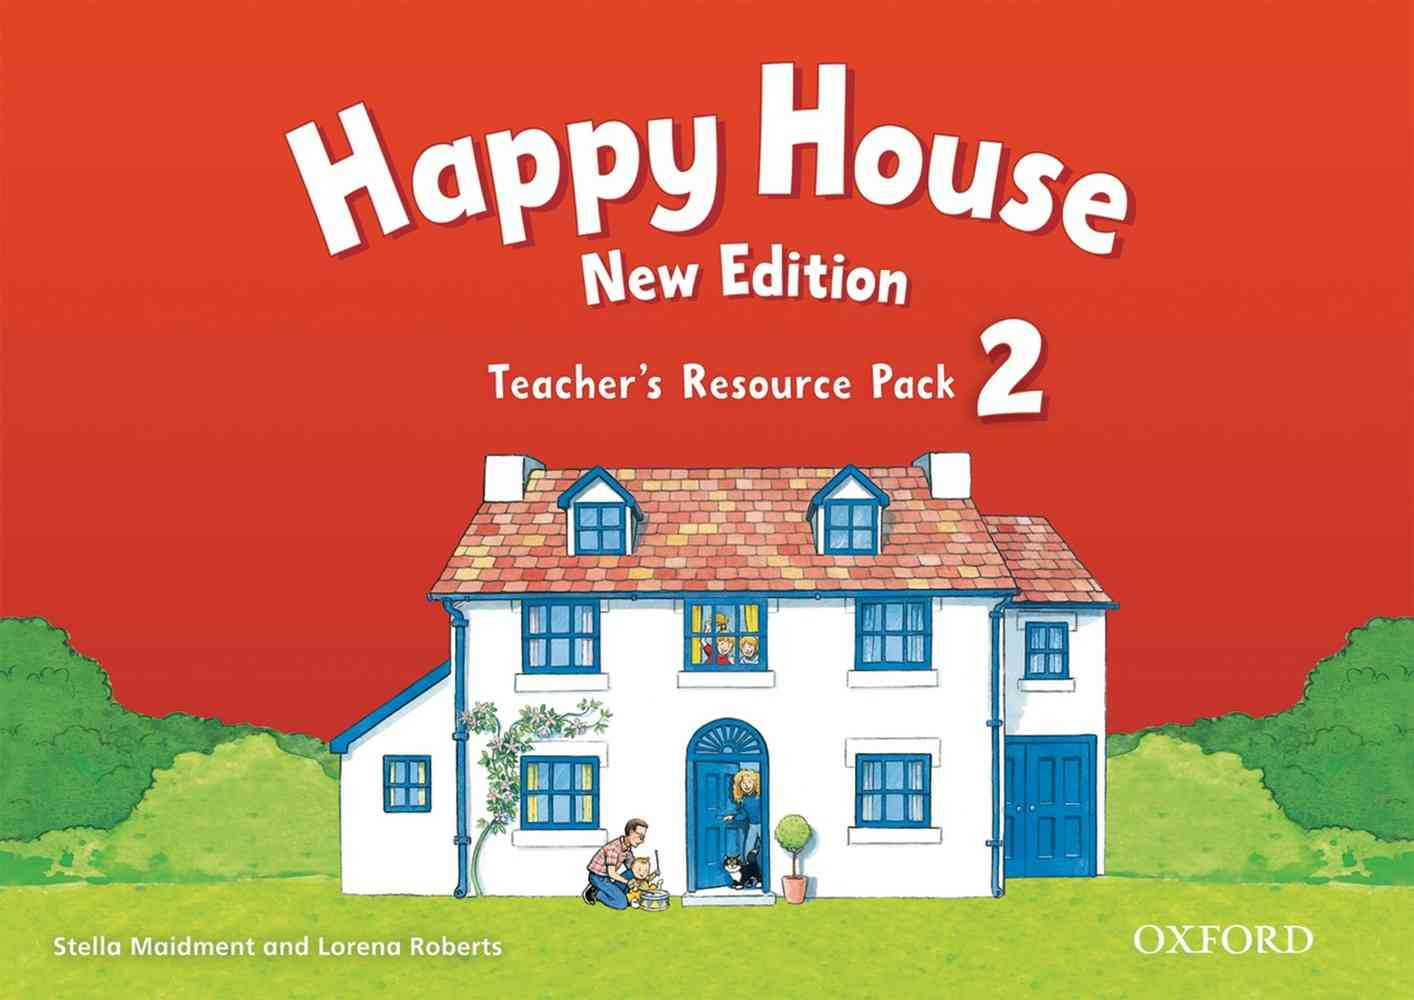 Happy House 2 Teacher's Resource Pack image0